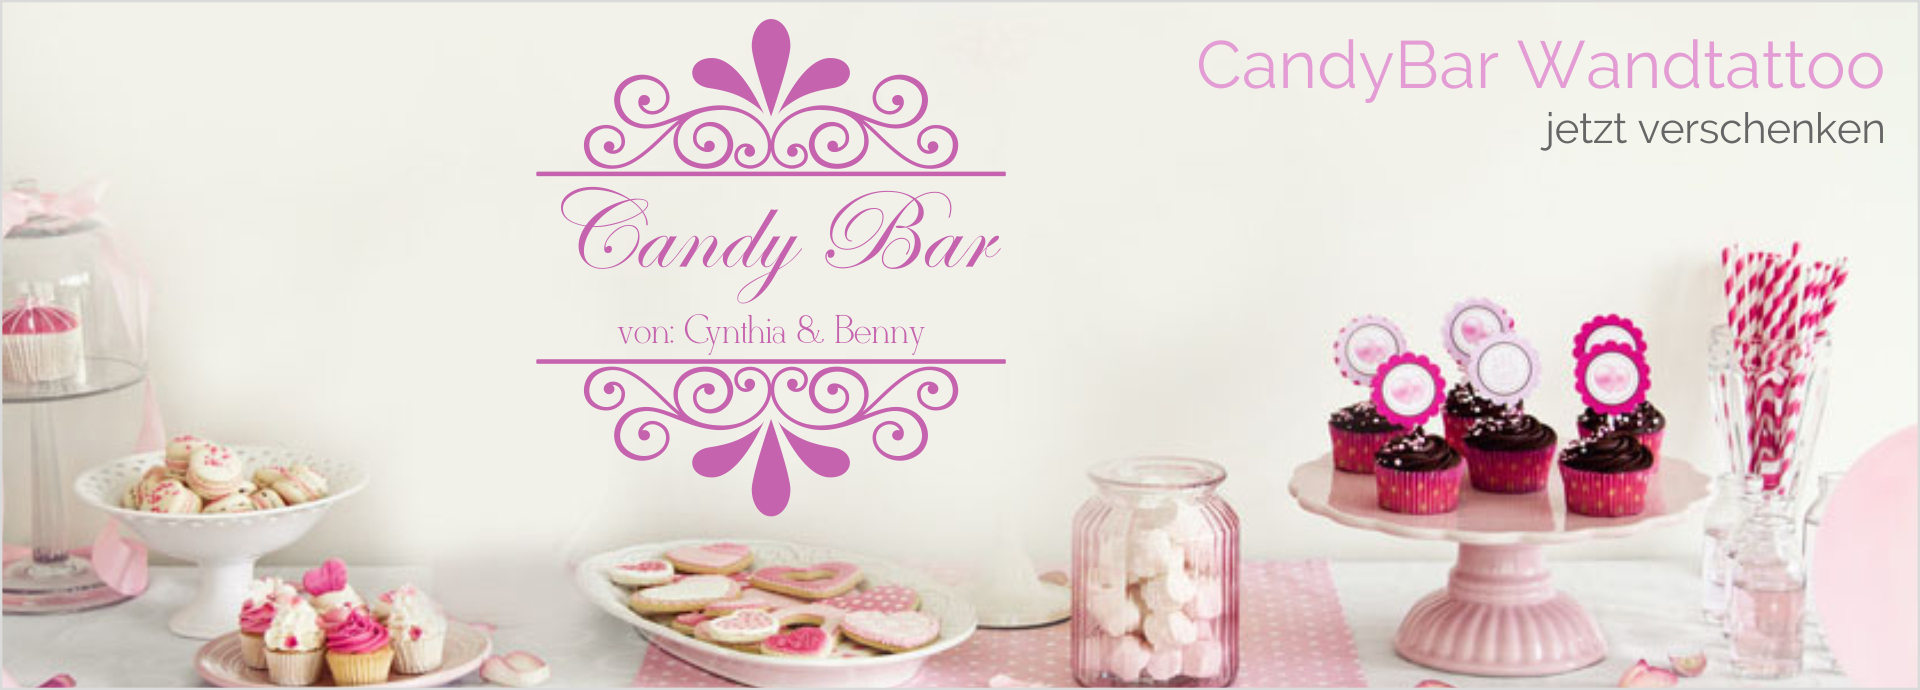 Wandtattoos Candy Bar